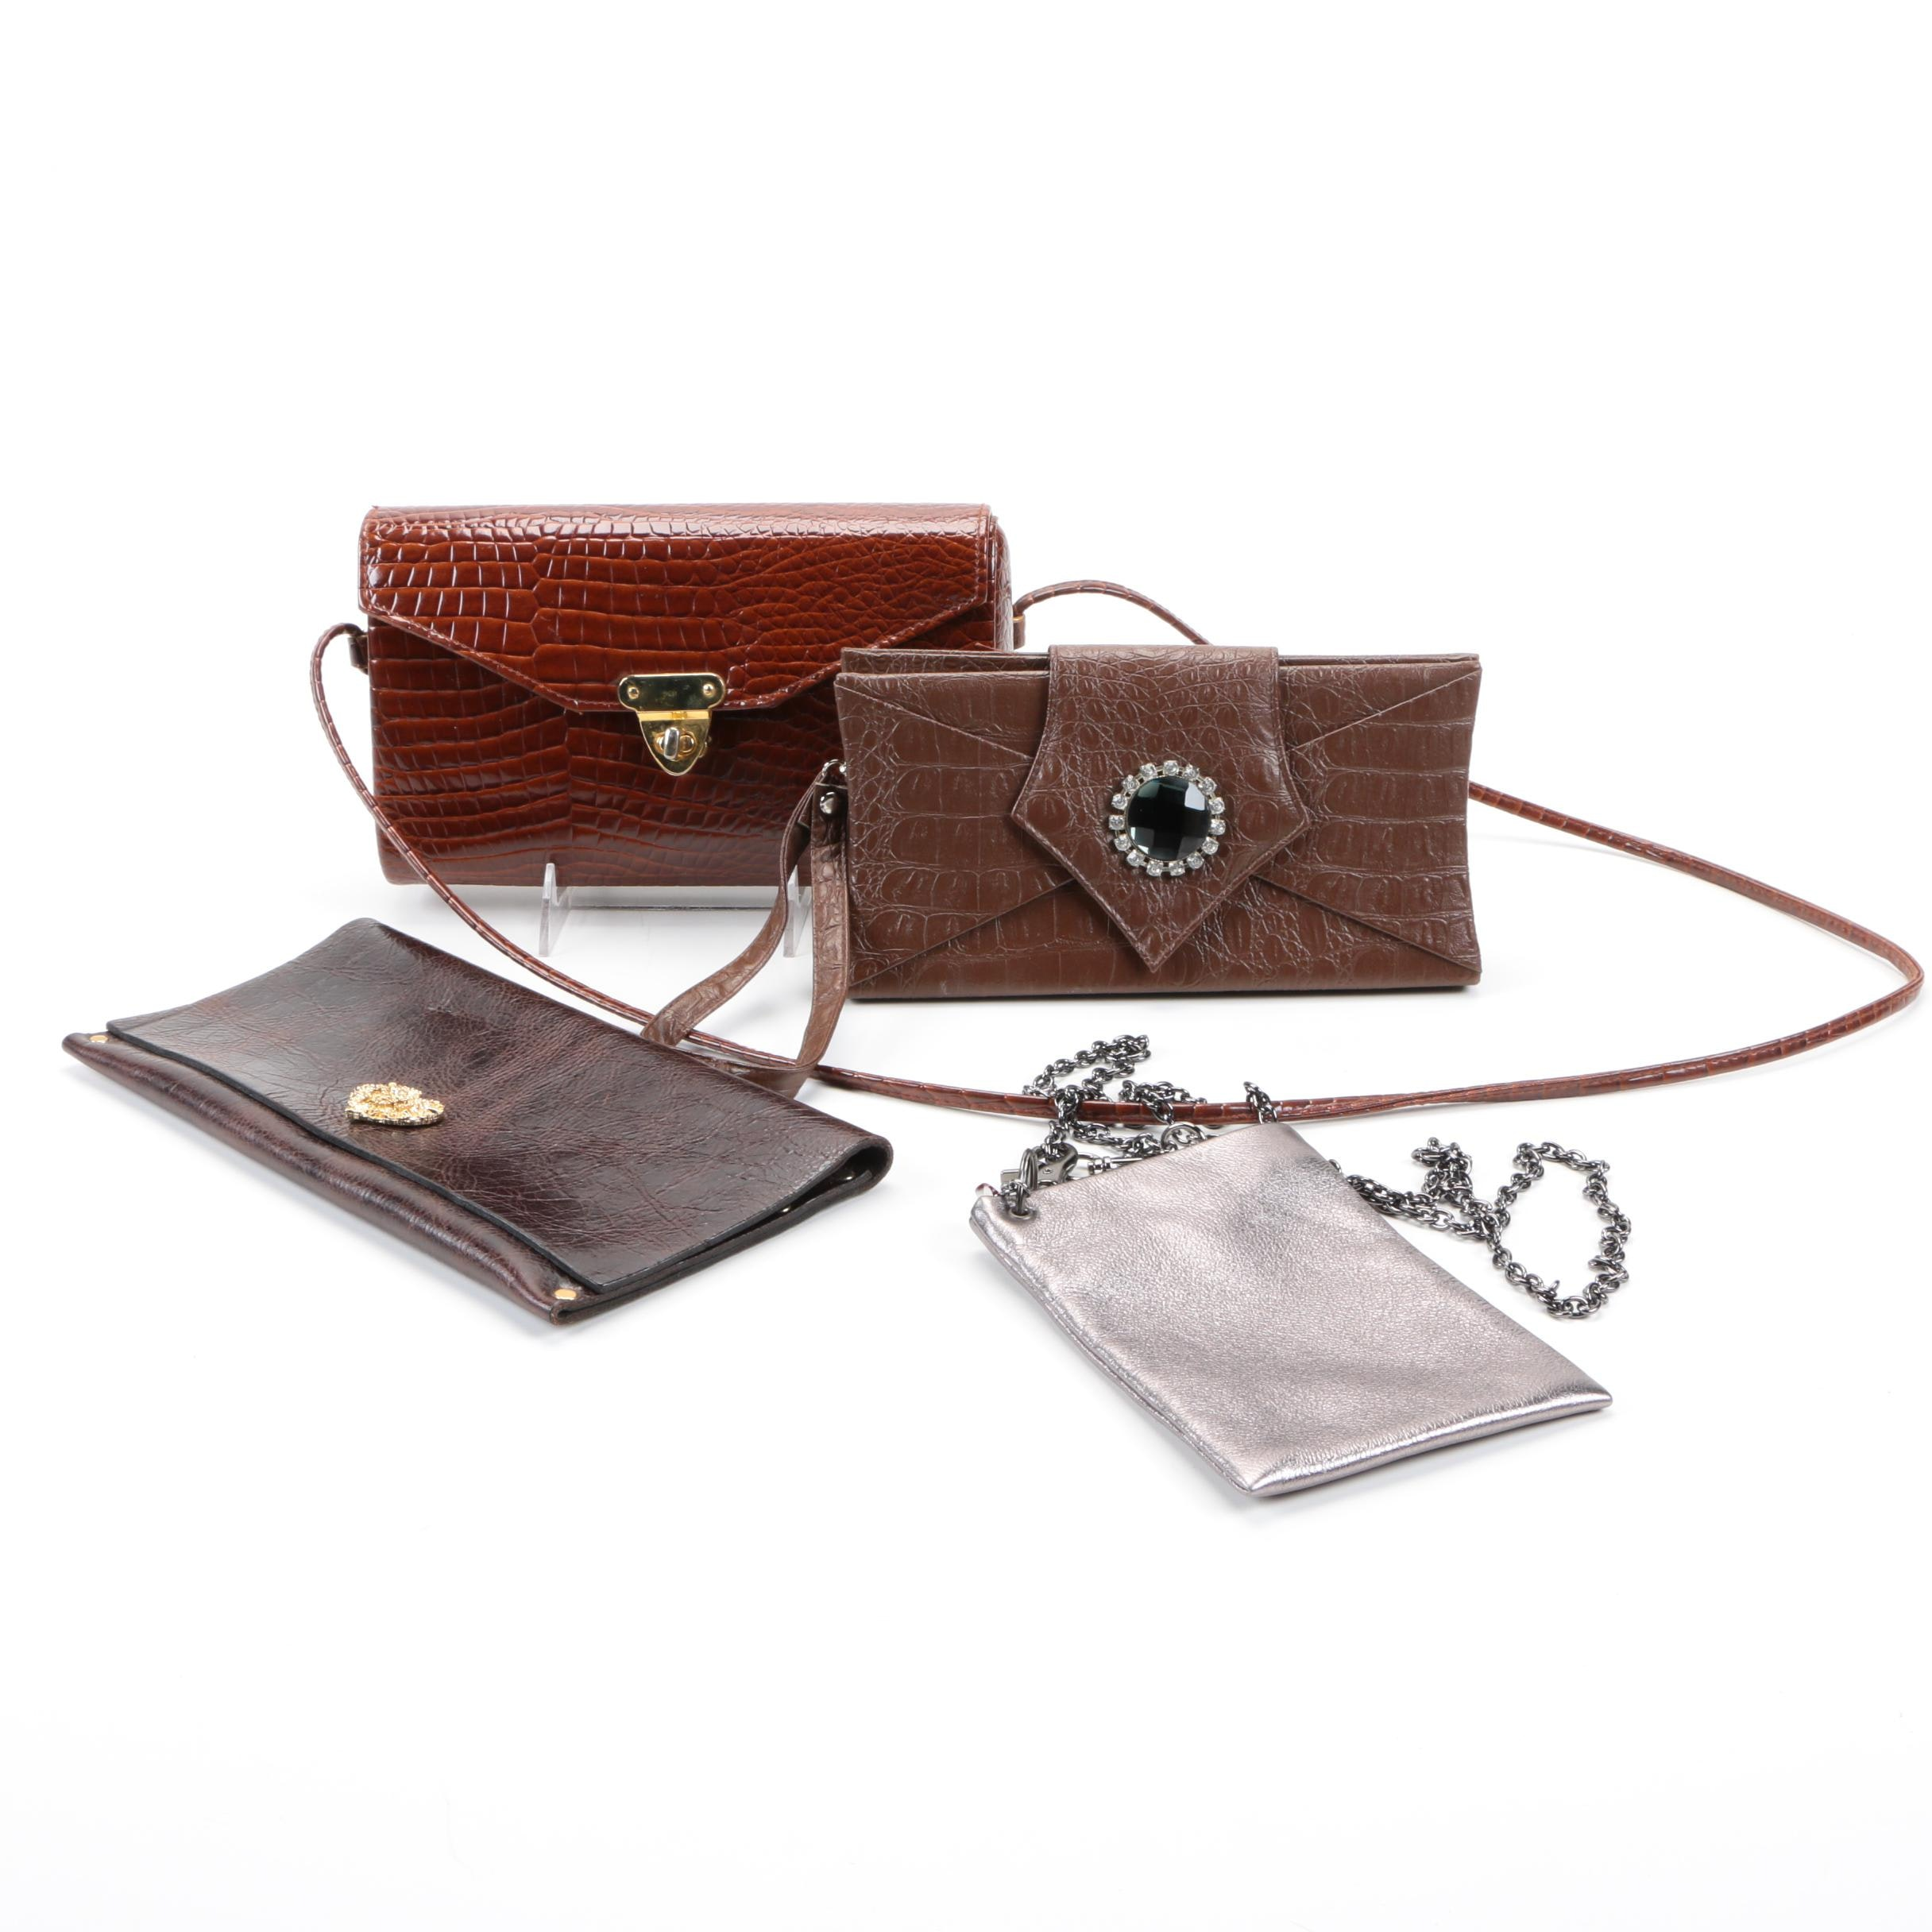 Embossed Leather Crossbody Bags and Clutch